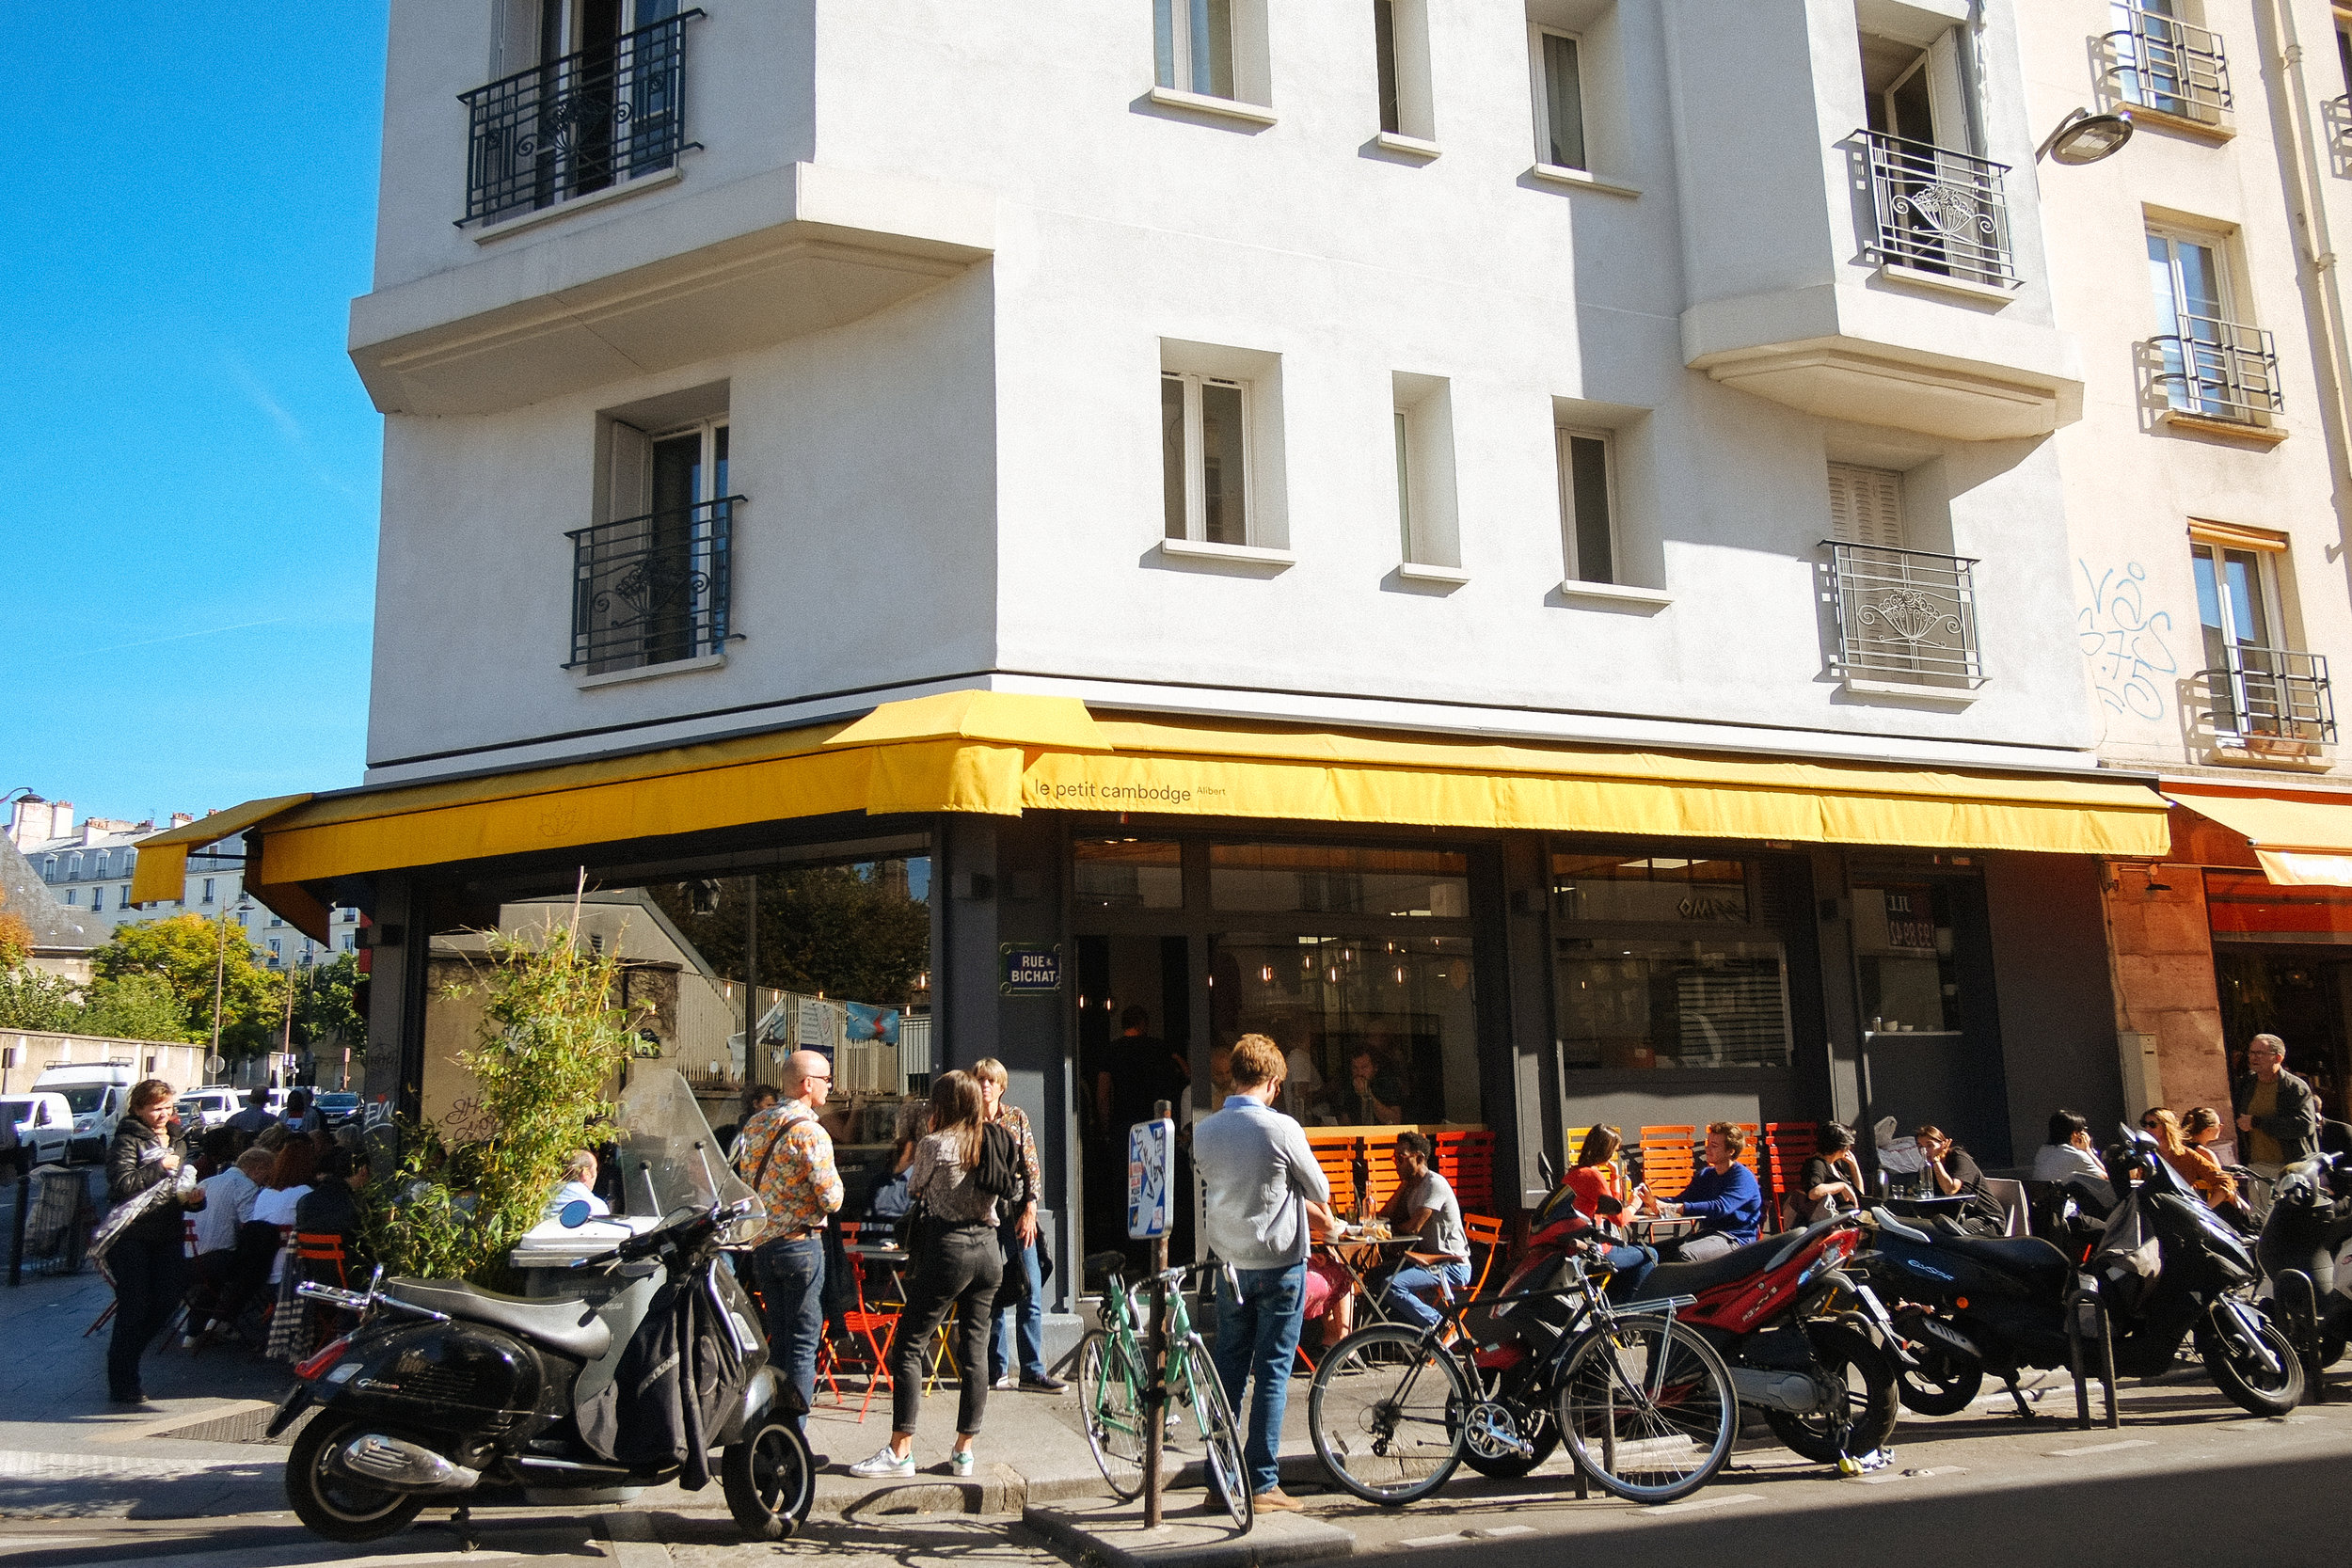 Le Petit Camodge - 2018-10-12: One of the best Cambodian meals i've ever had. Well the only Cambodian meal i've ever had… Le Petit Cambodge sits in the Canal Saint Martin area of the 10th arrondissement. Unfortunately after the fact, we learned that this was one of the targets of the 2016 terrorist attacks.